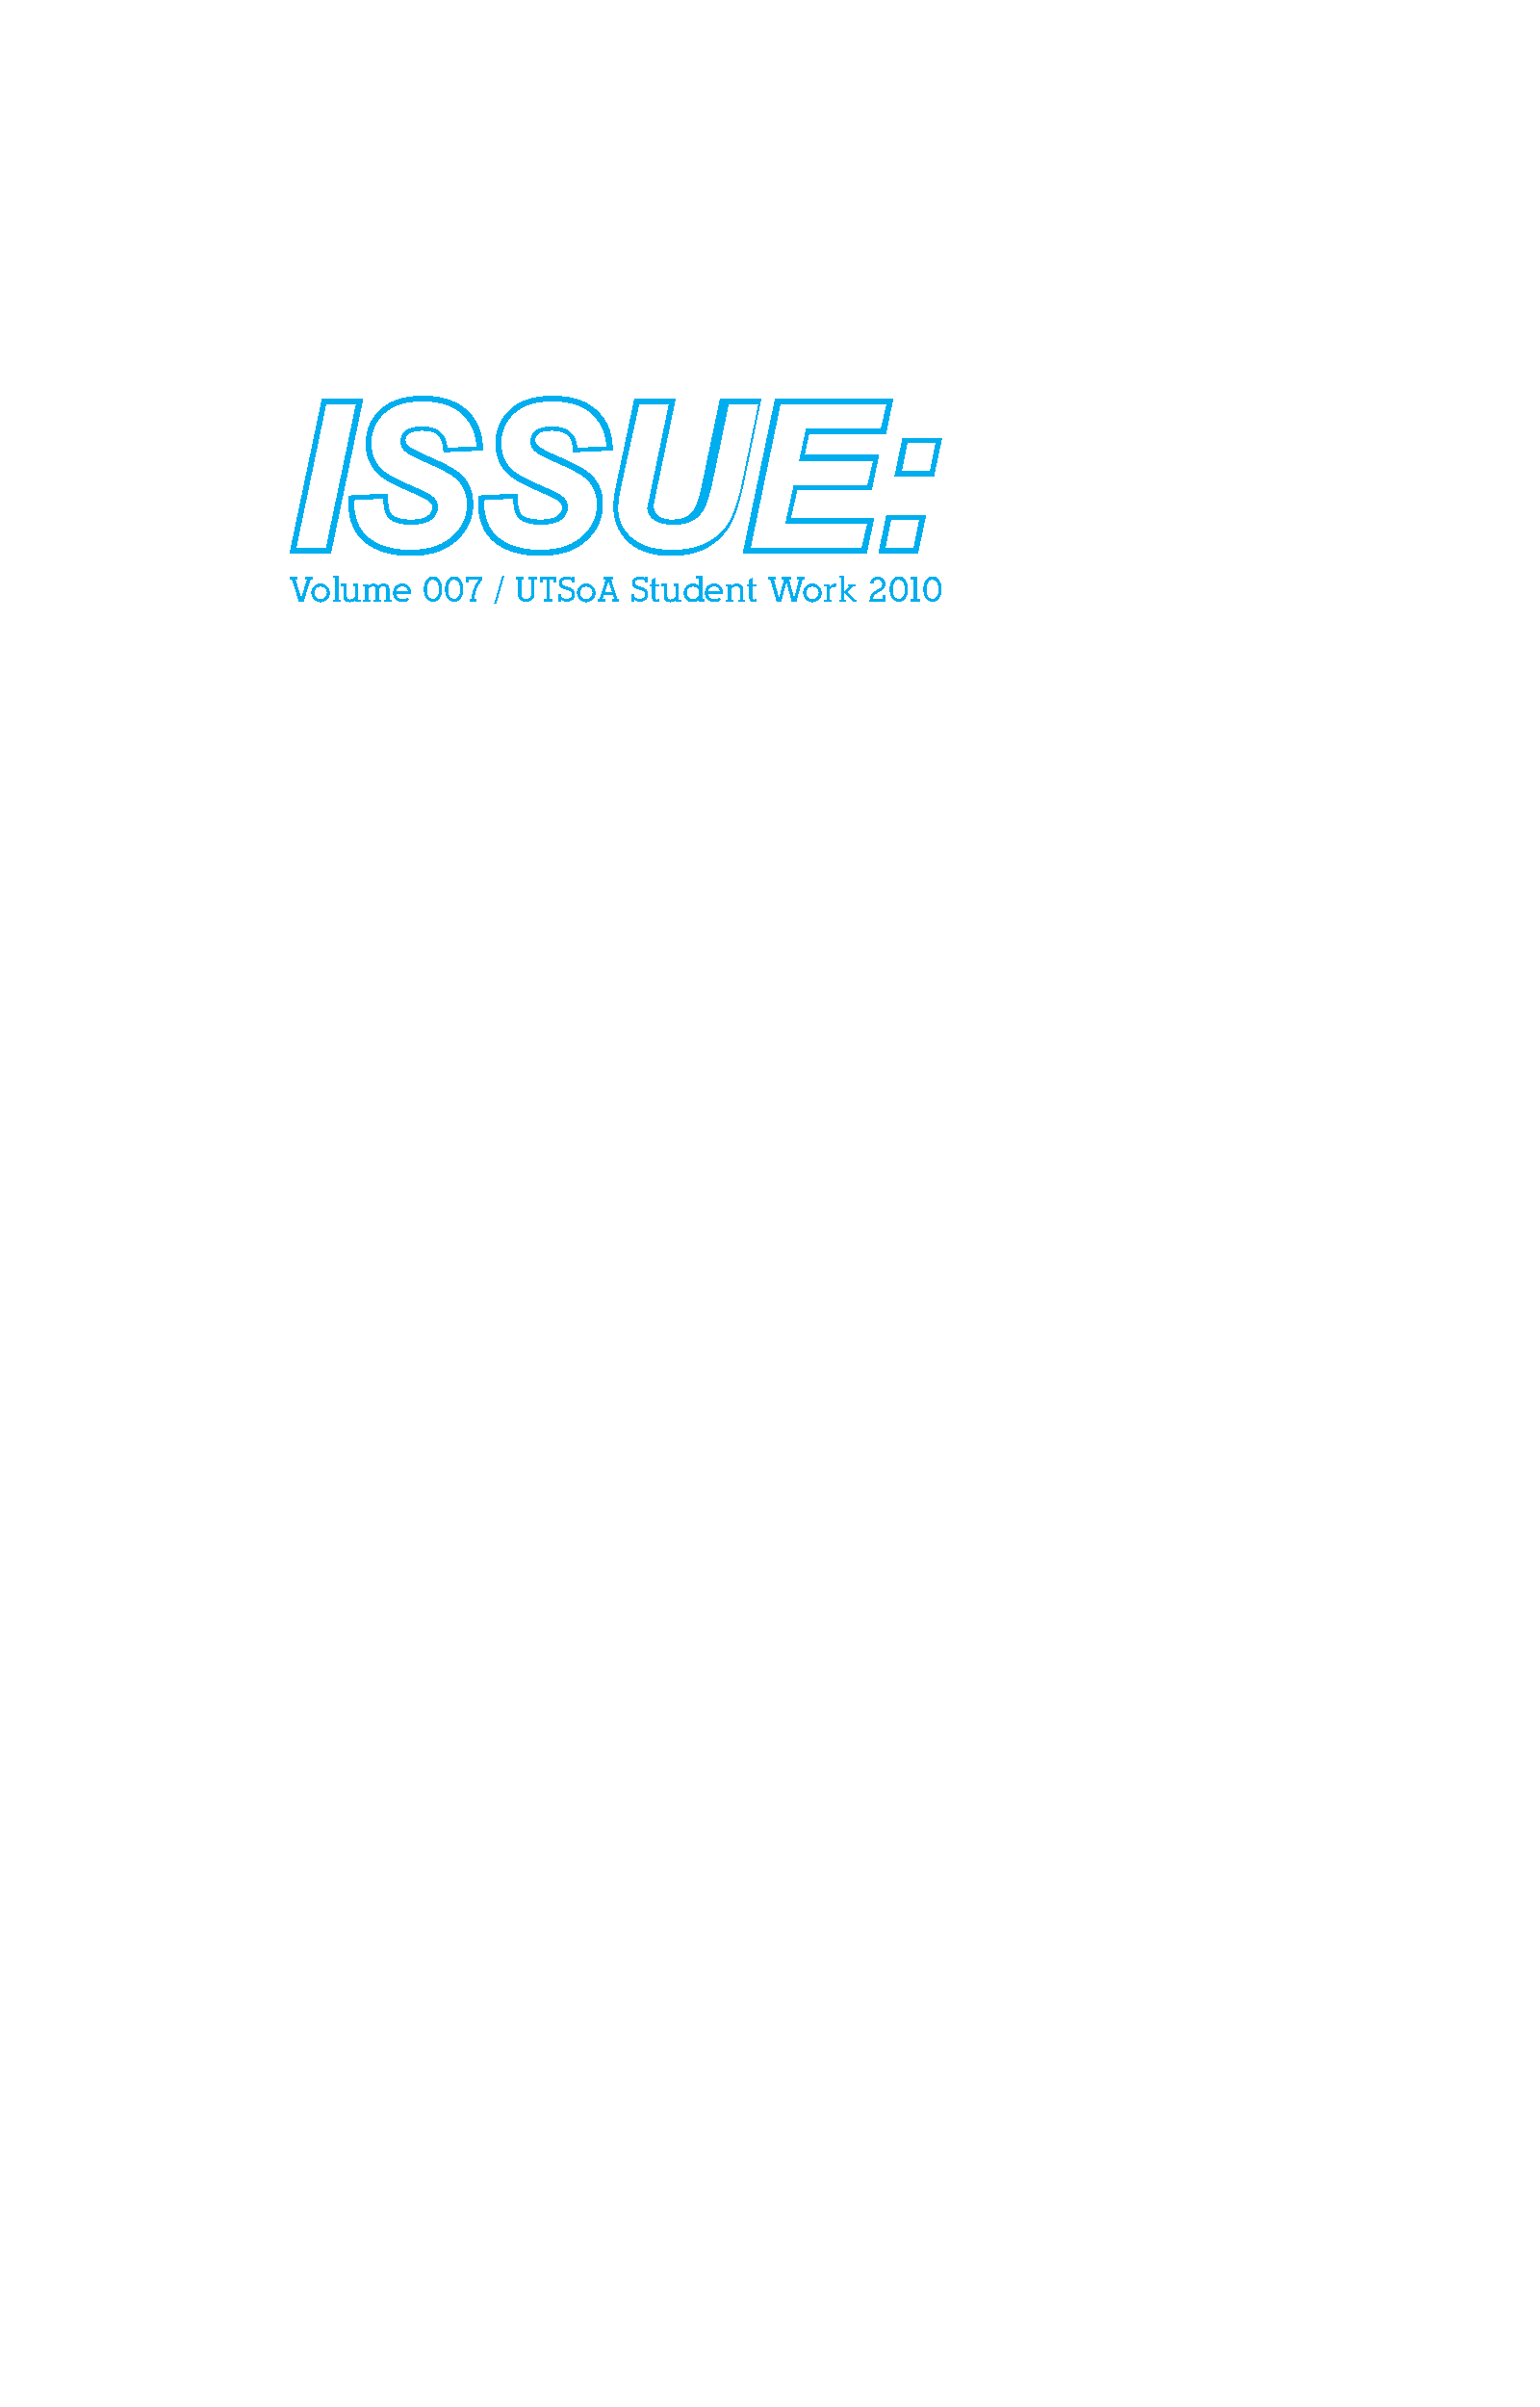 ISSUE: 007 cover